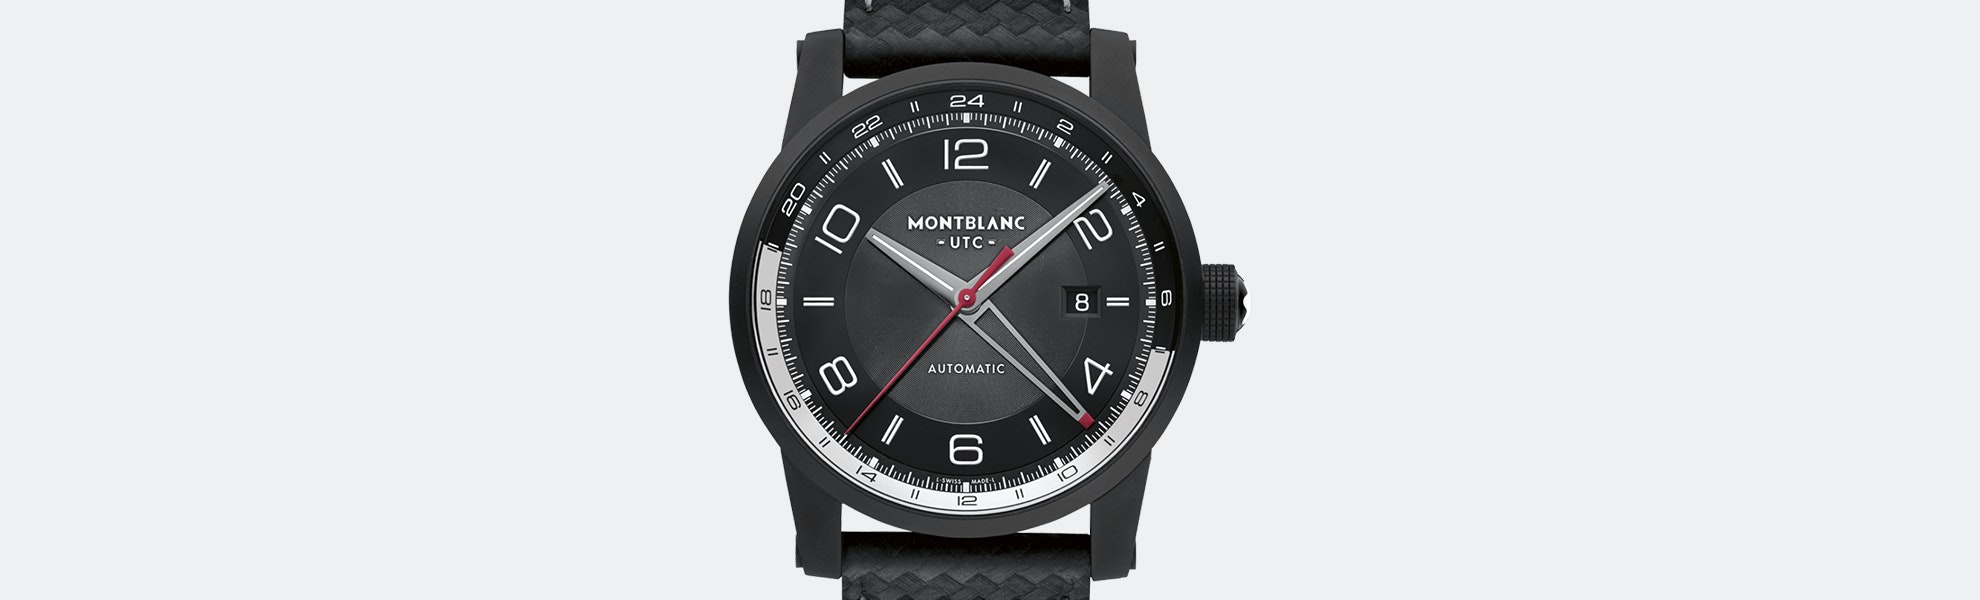 Montblanc Timewalker Urban UTC Automatic Watch